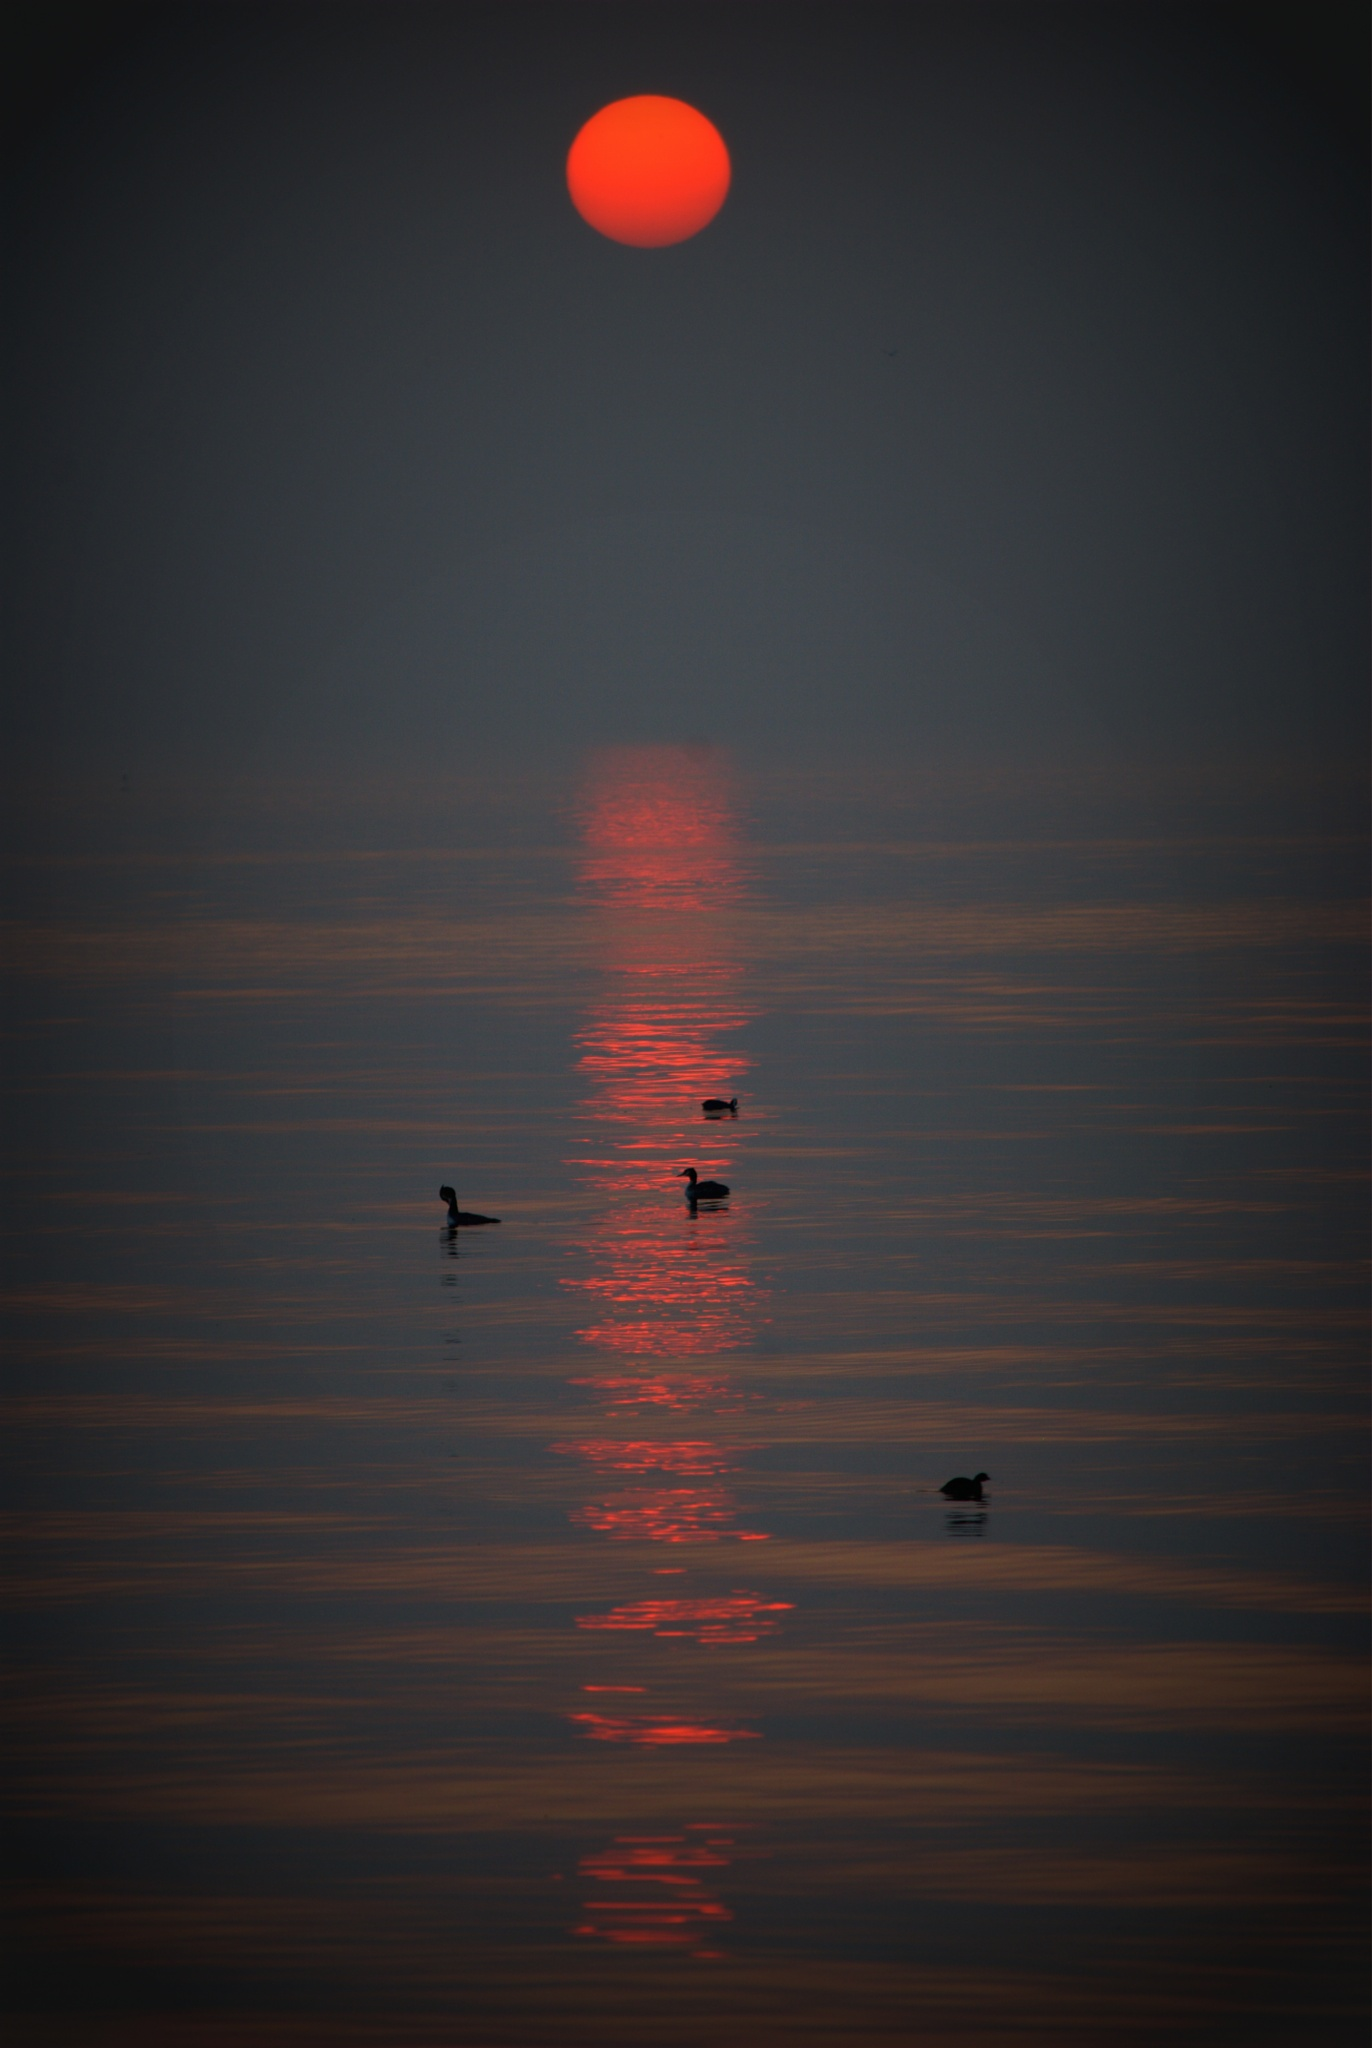 Sound of Silence by CarmeloRaineri